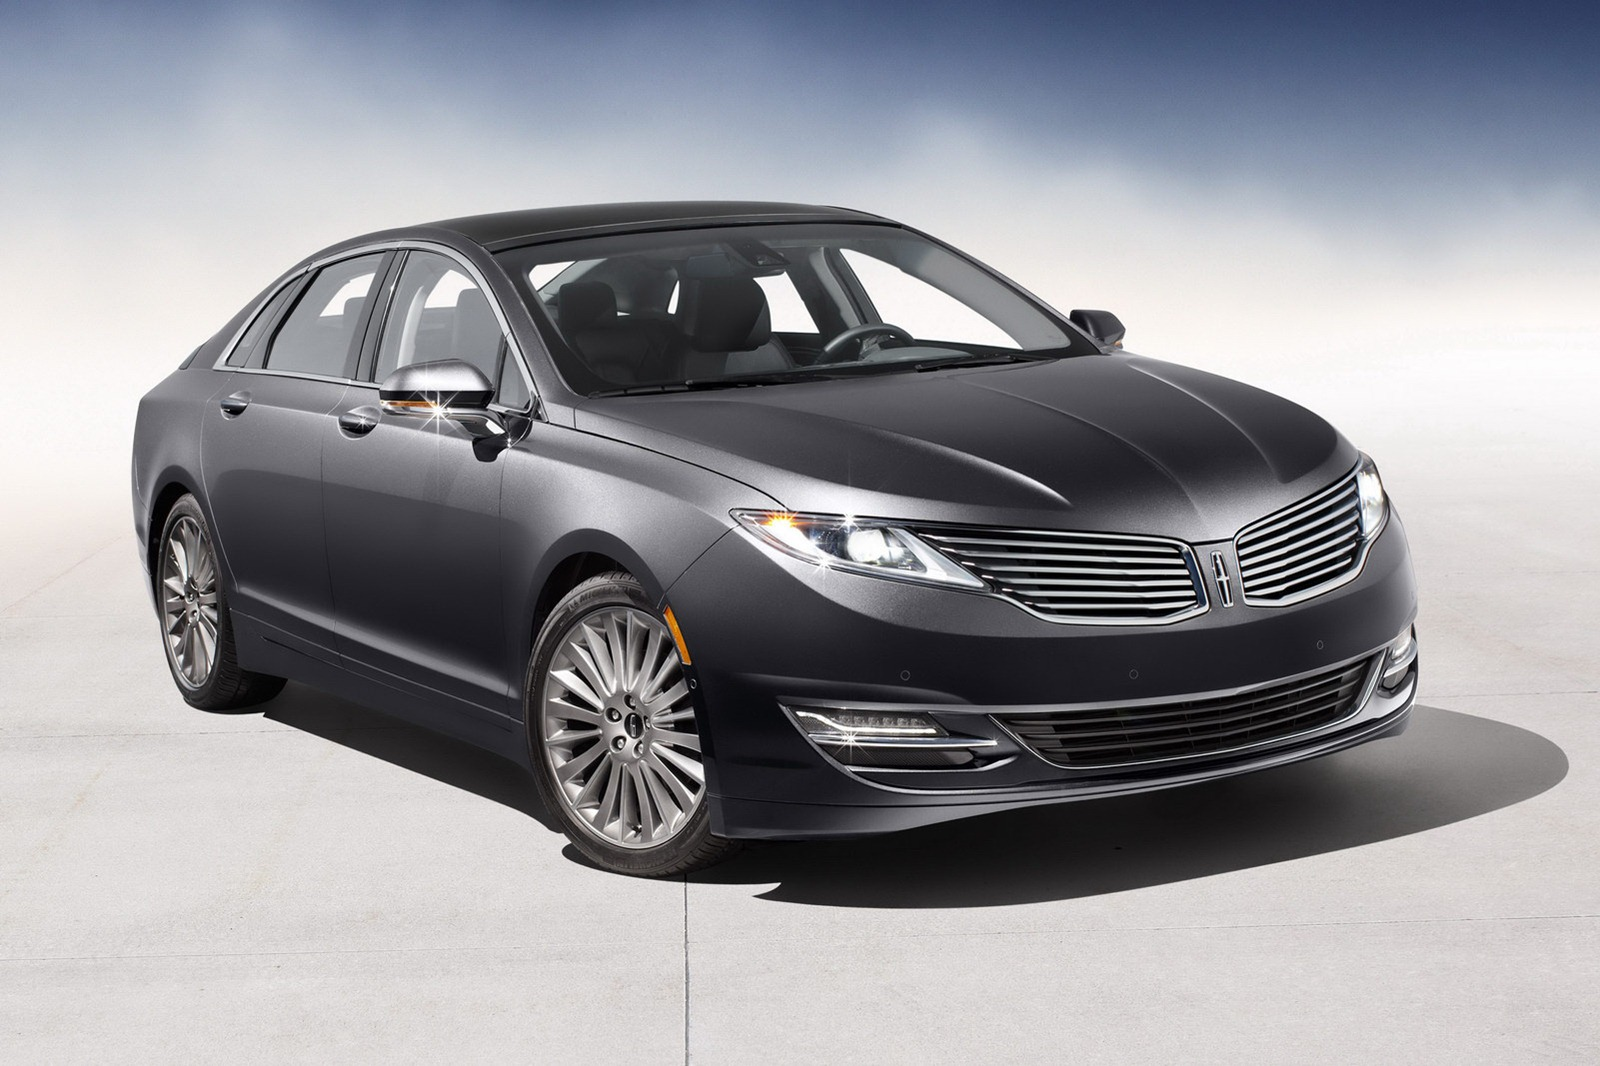 new car for 2013 - 2013 luxury cars -2013 lincoln - lincoln automobiles